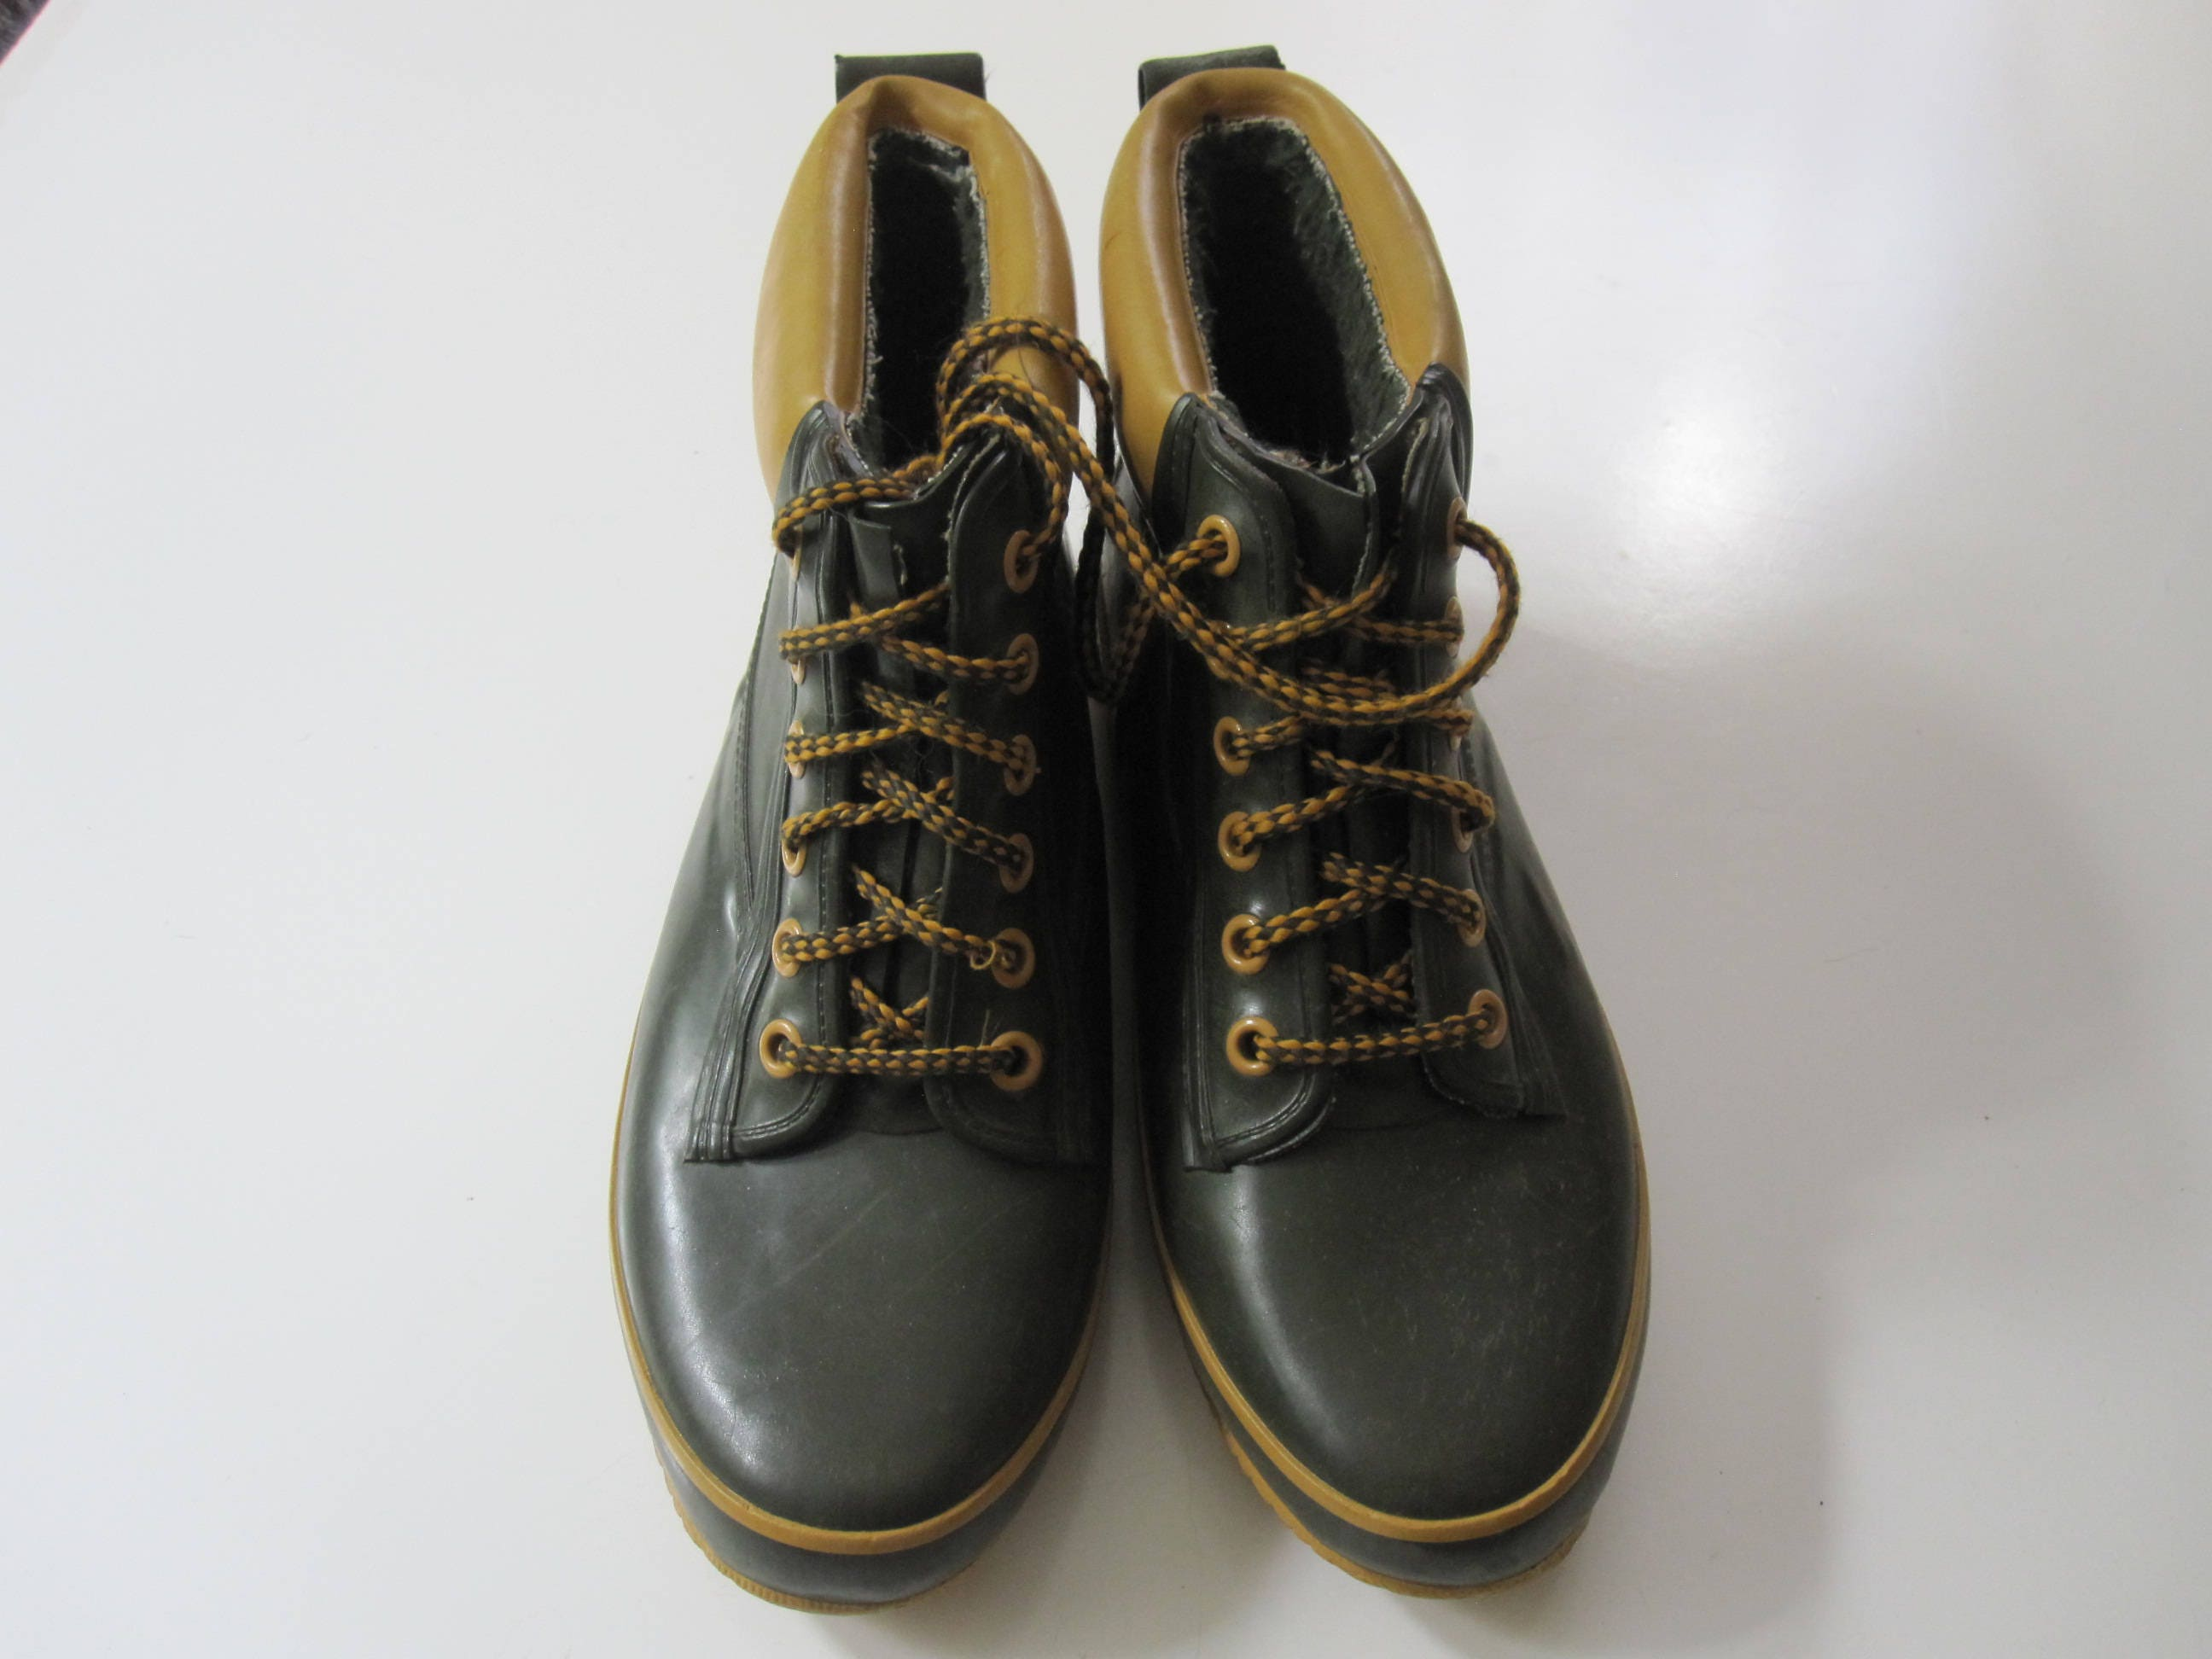 Vintage Rain Boots Sporto Size US Women's 9 Army Green and yellow ...